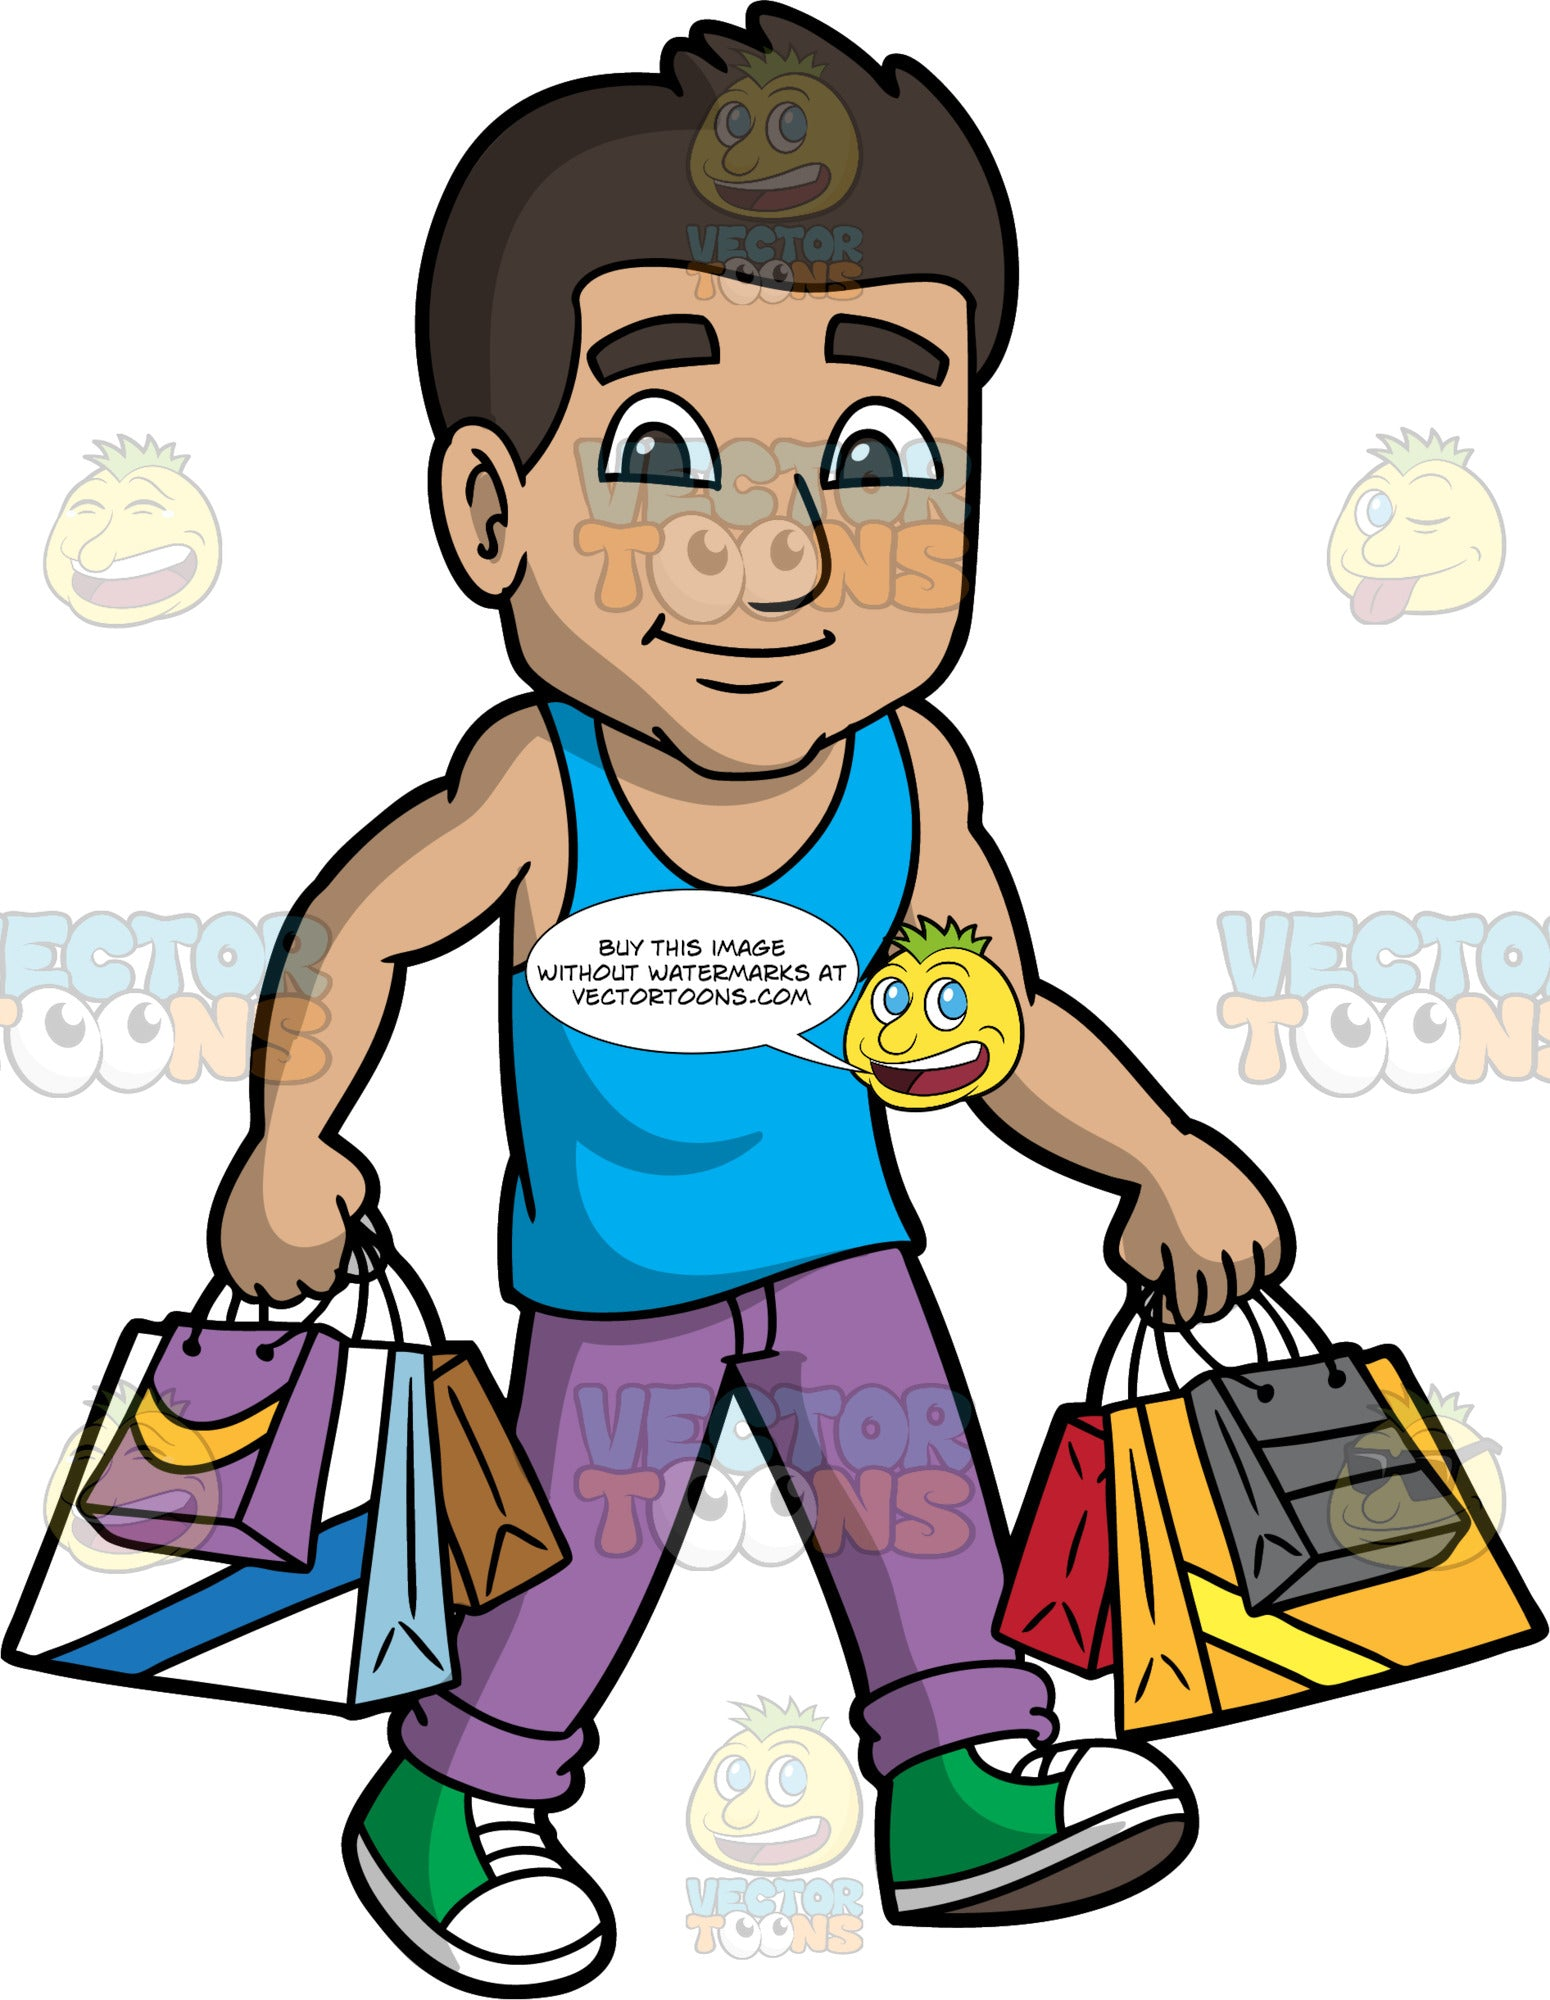 A Man Walking With His Purchased Goods. A muscular man with dark brown hair, wearing purple pants, a blue tank top, and green and white sneakers, walks while carrying several shopping bags